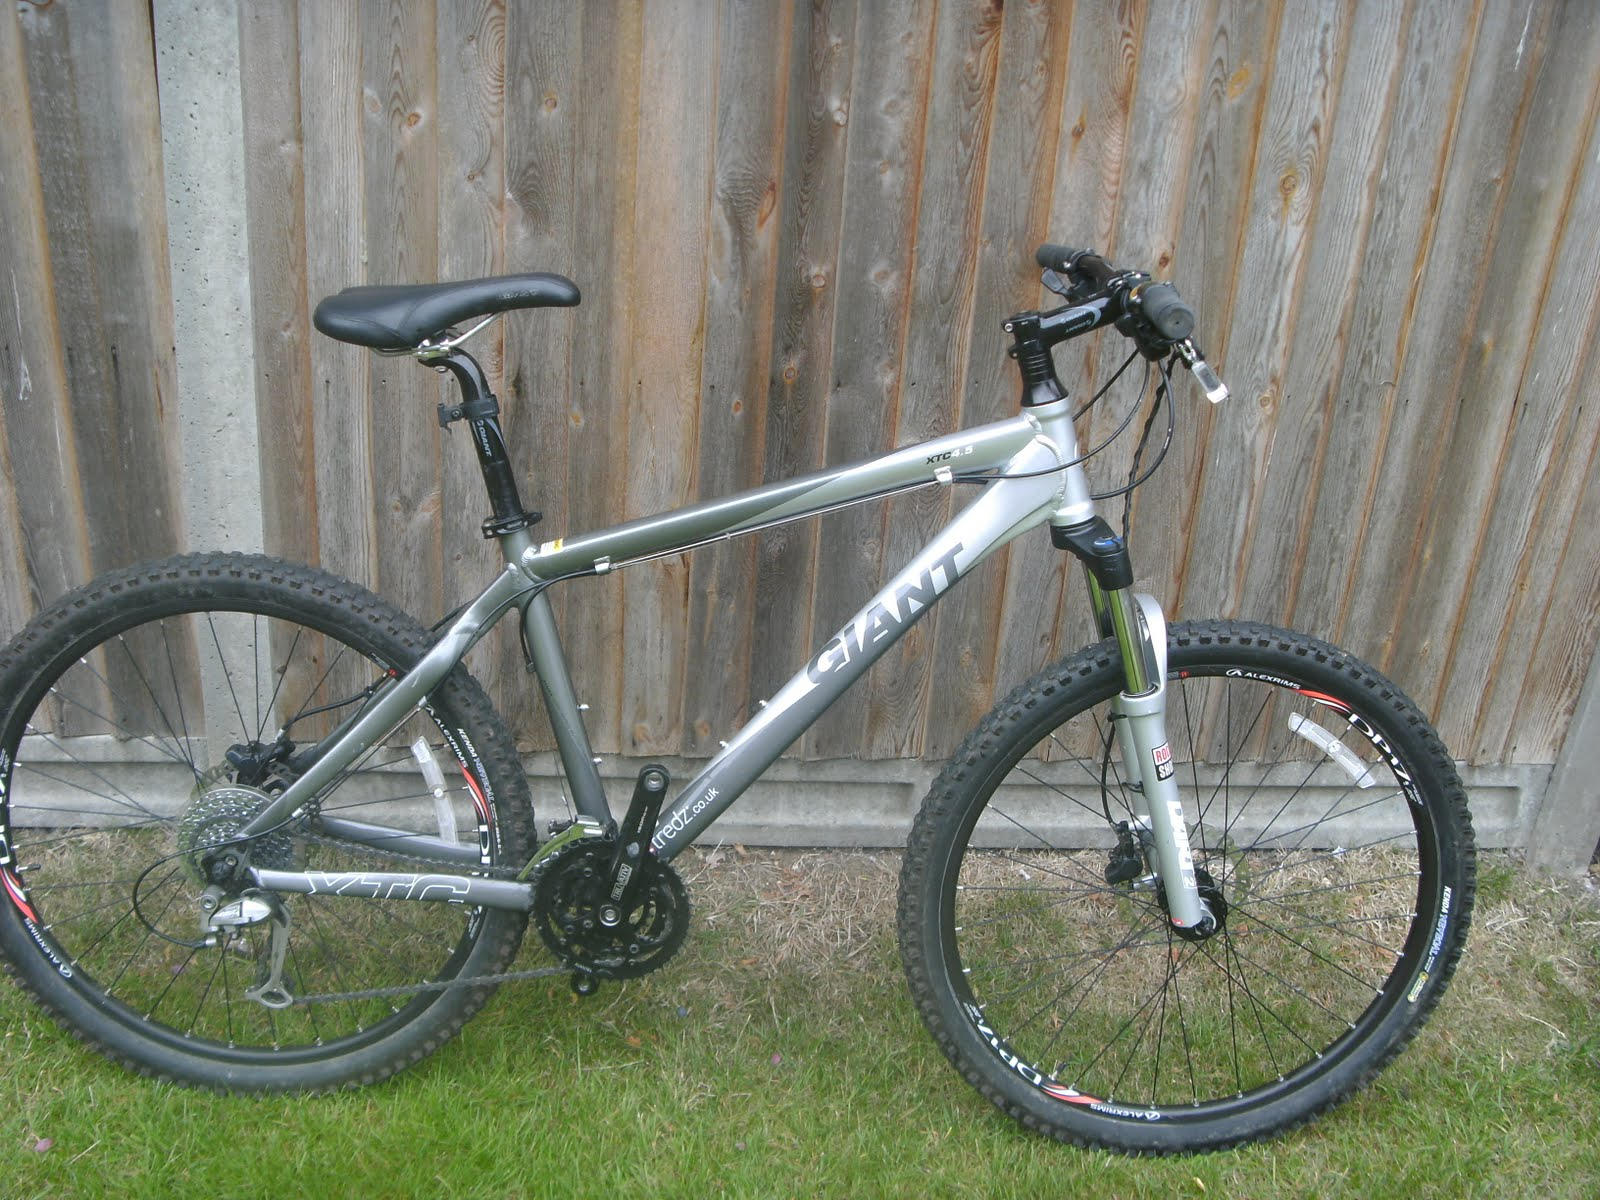 Knobblies Mtbing Blog Giant Xtc 4 5 For Sale 250 Sold